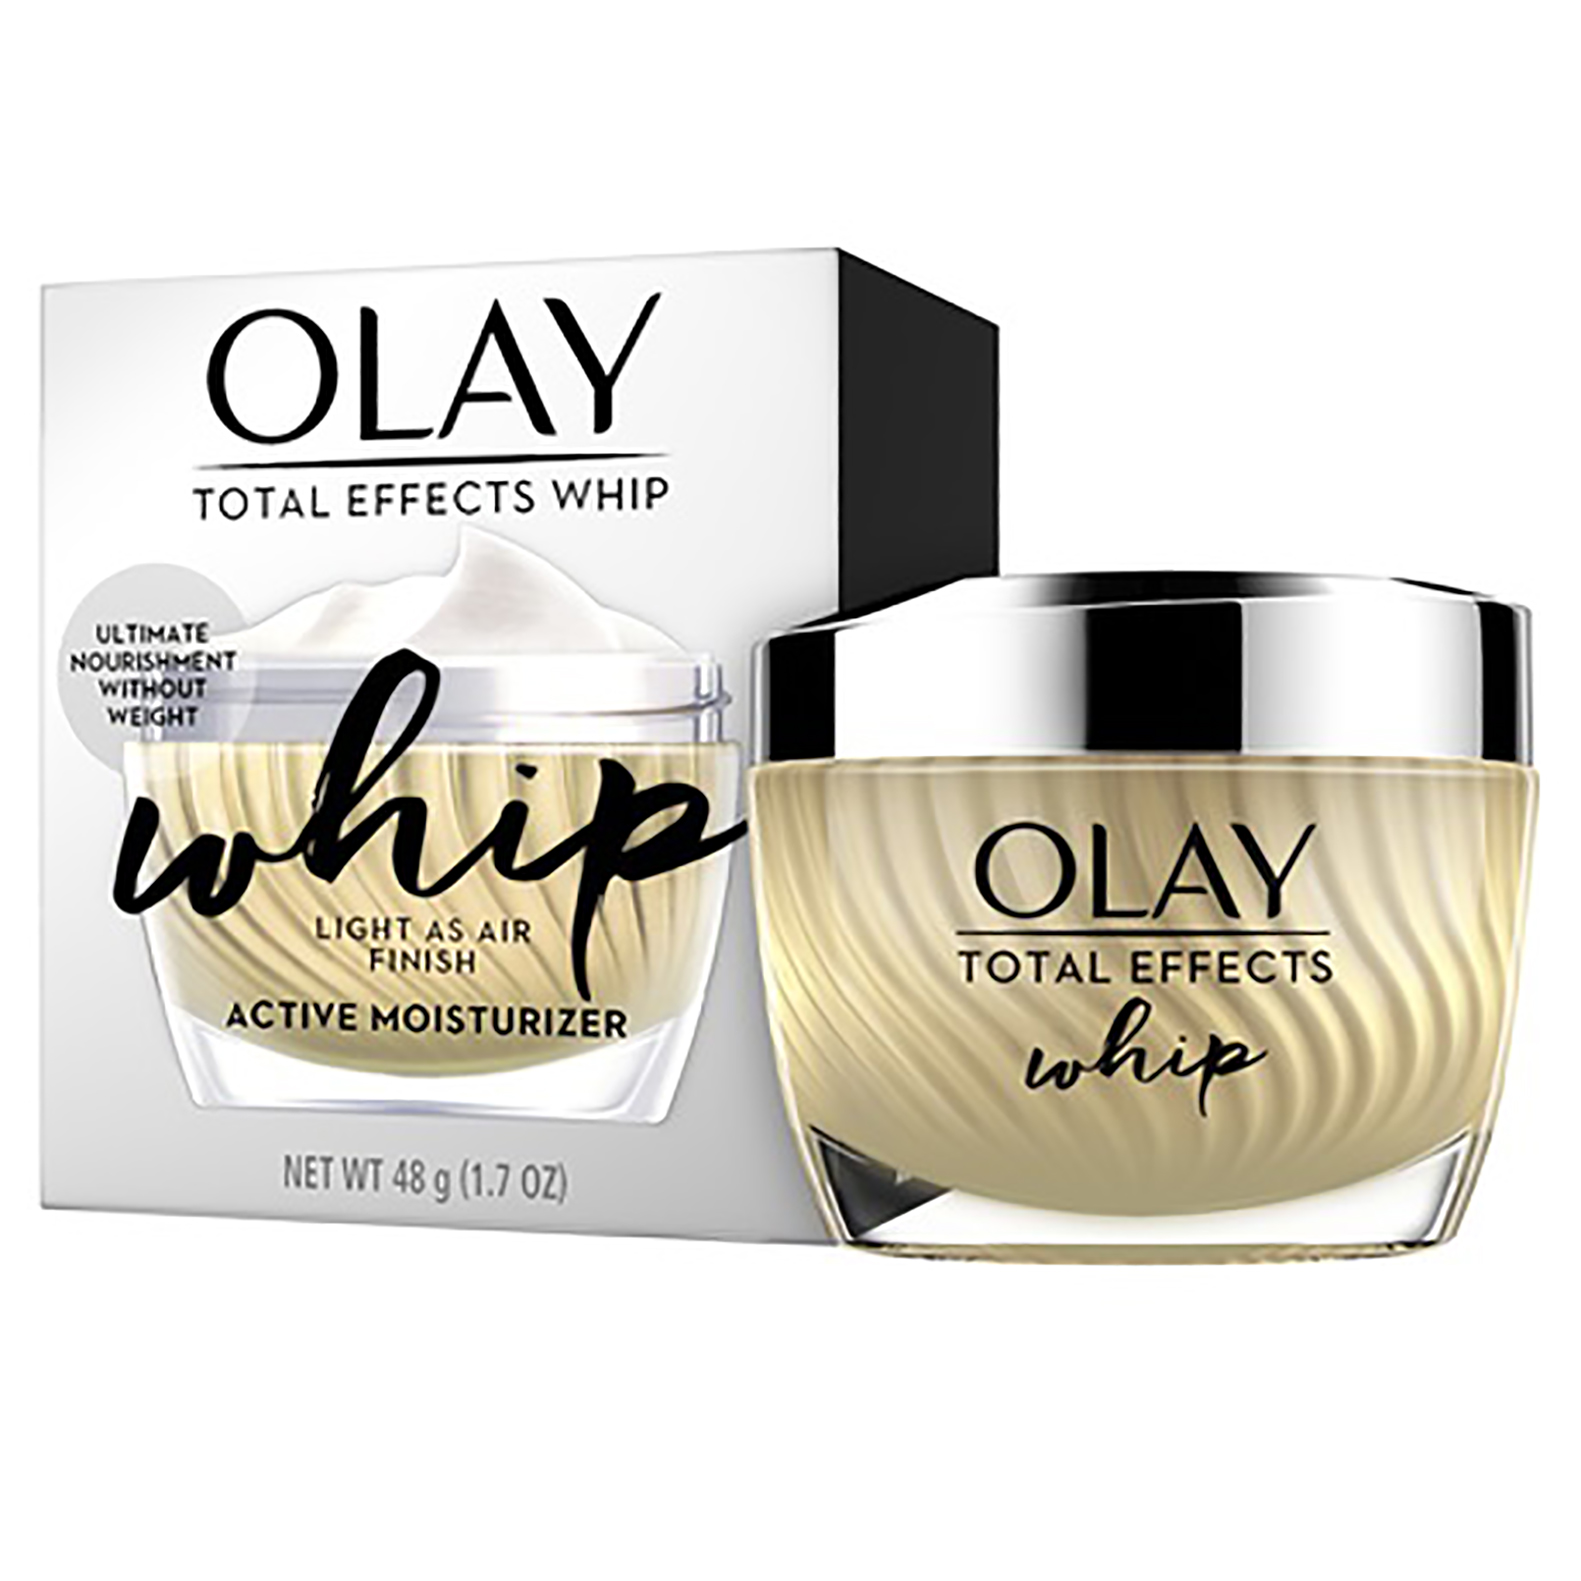 Olay Total Effects Whip Cream 50g